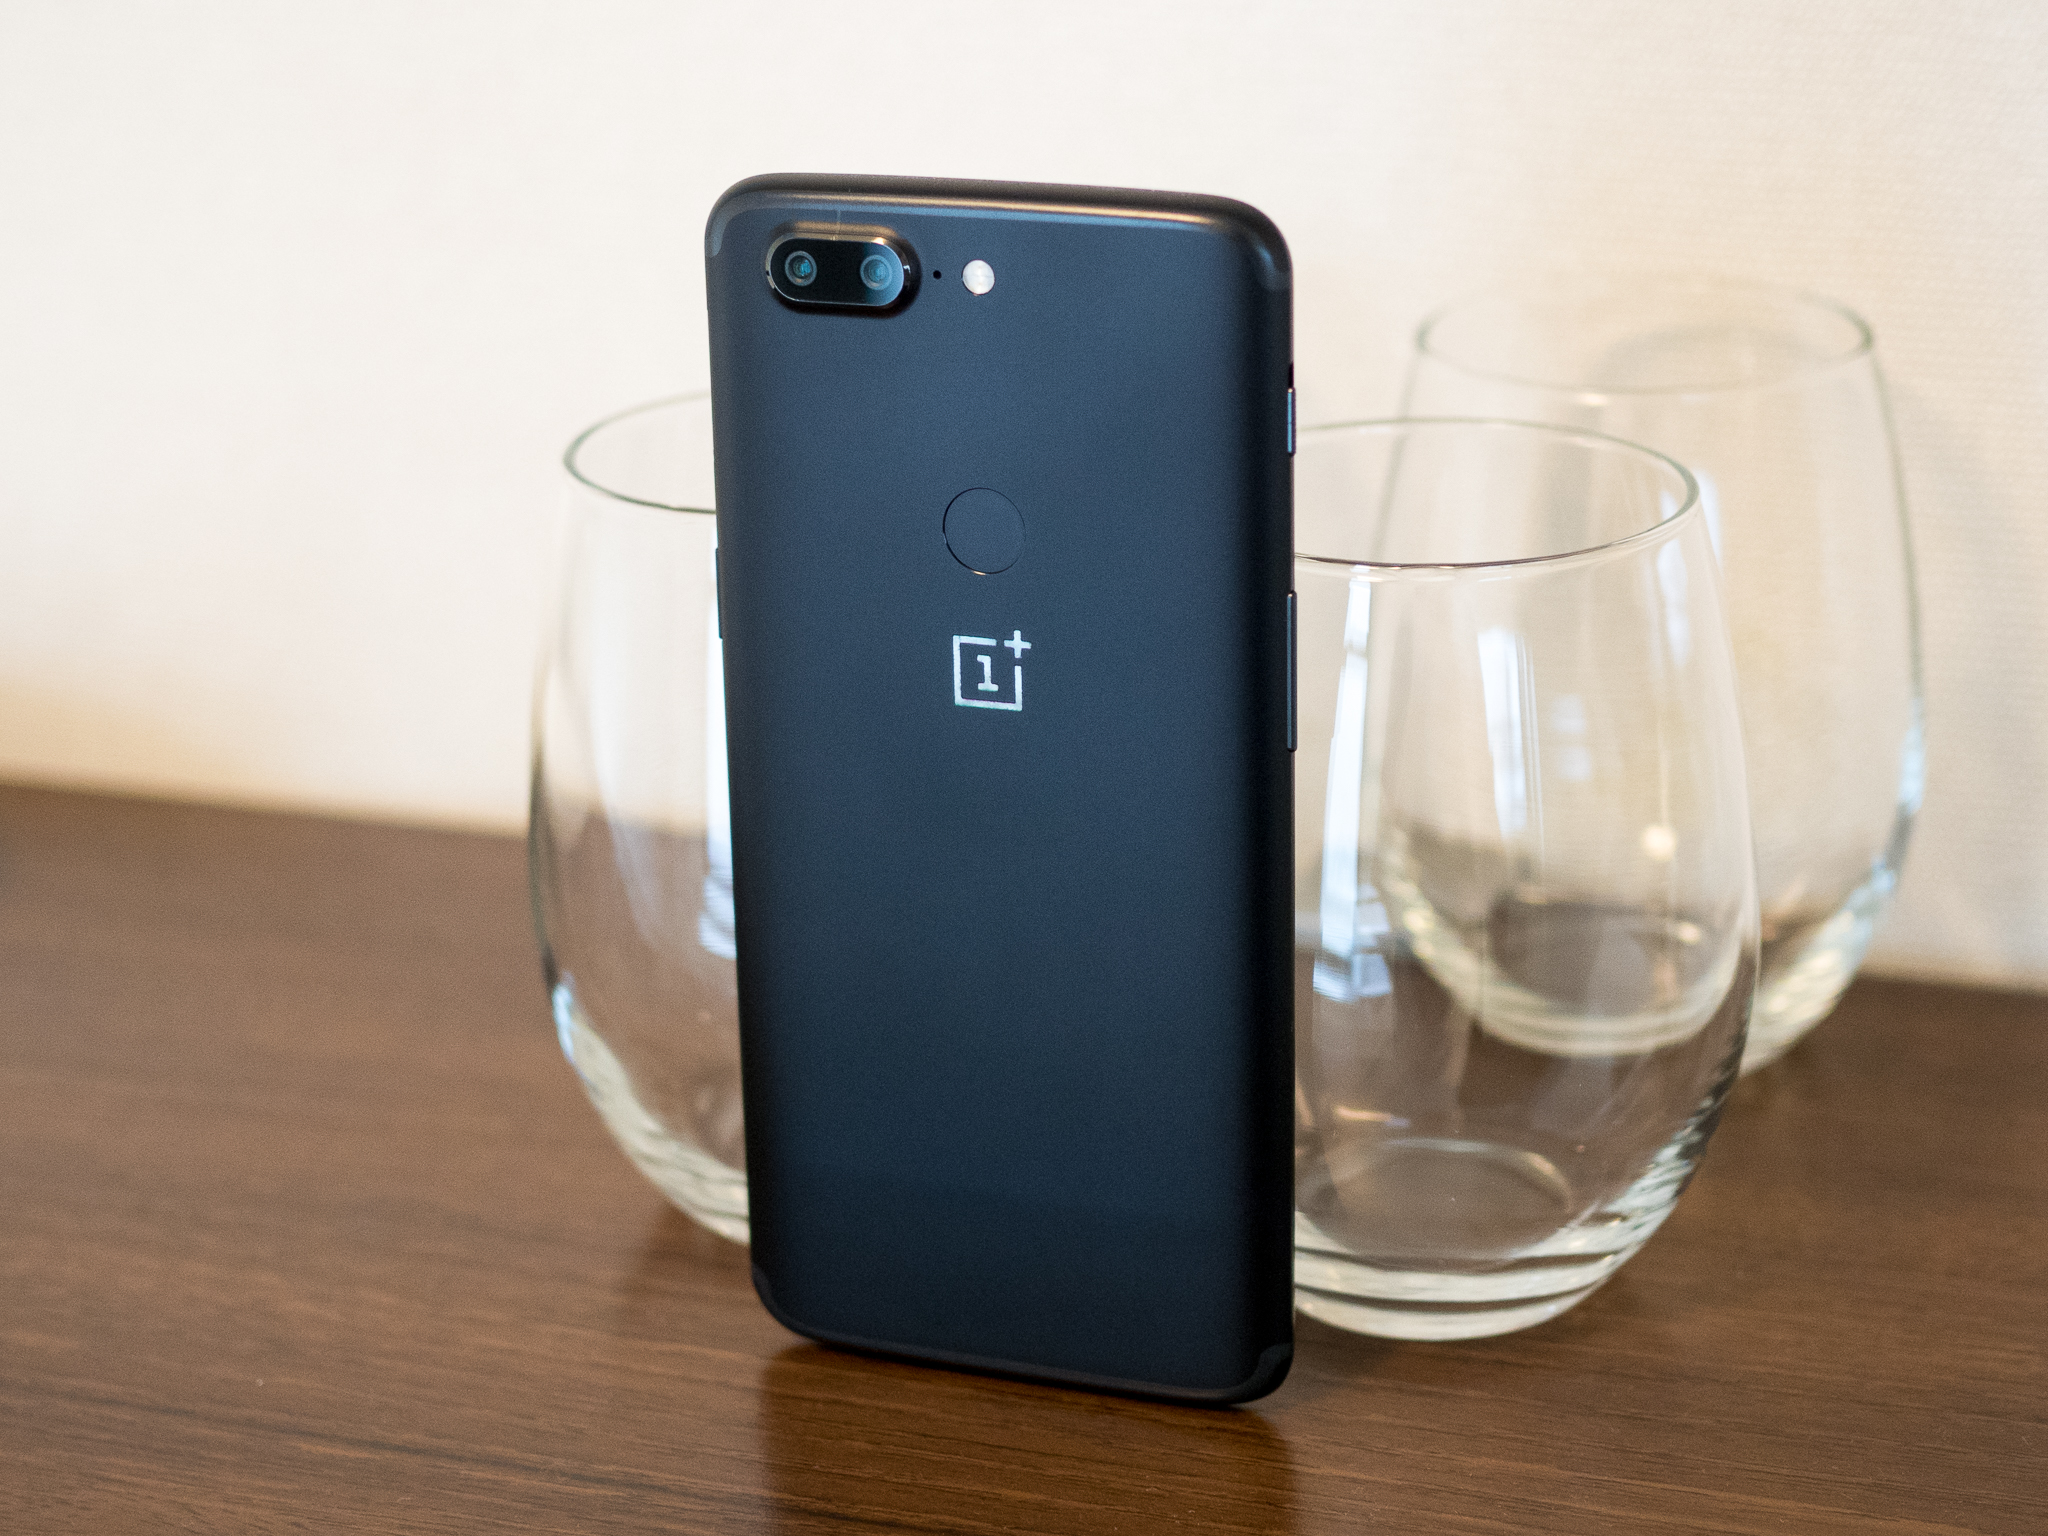 Engrossing Oneplus Giving You Achoice Storage Ram A Nominal Increase Of Ram And We Once Again Have Two Distinct Models You Oneplus Should You Pay Extra Storage Options dpreview How Many Pictures Can 8gb Hold